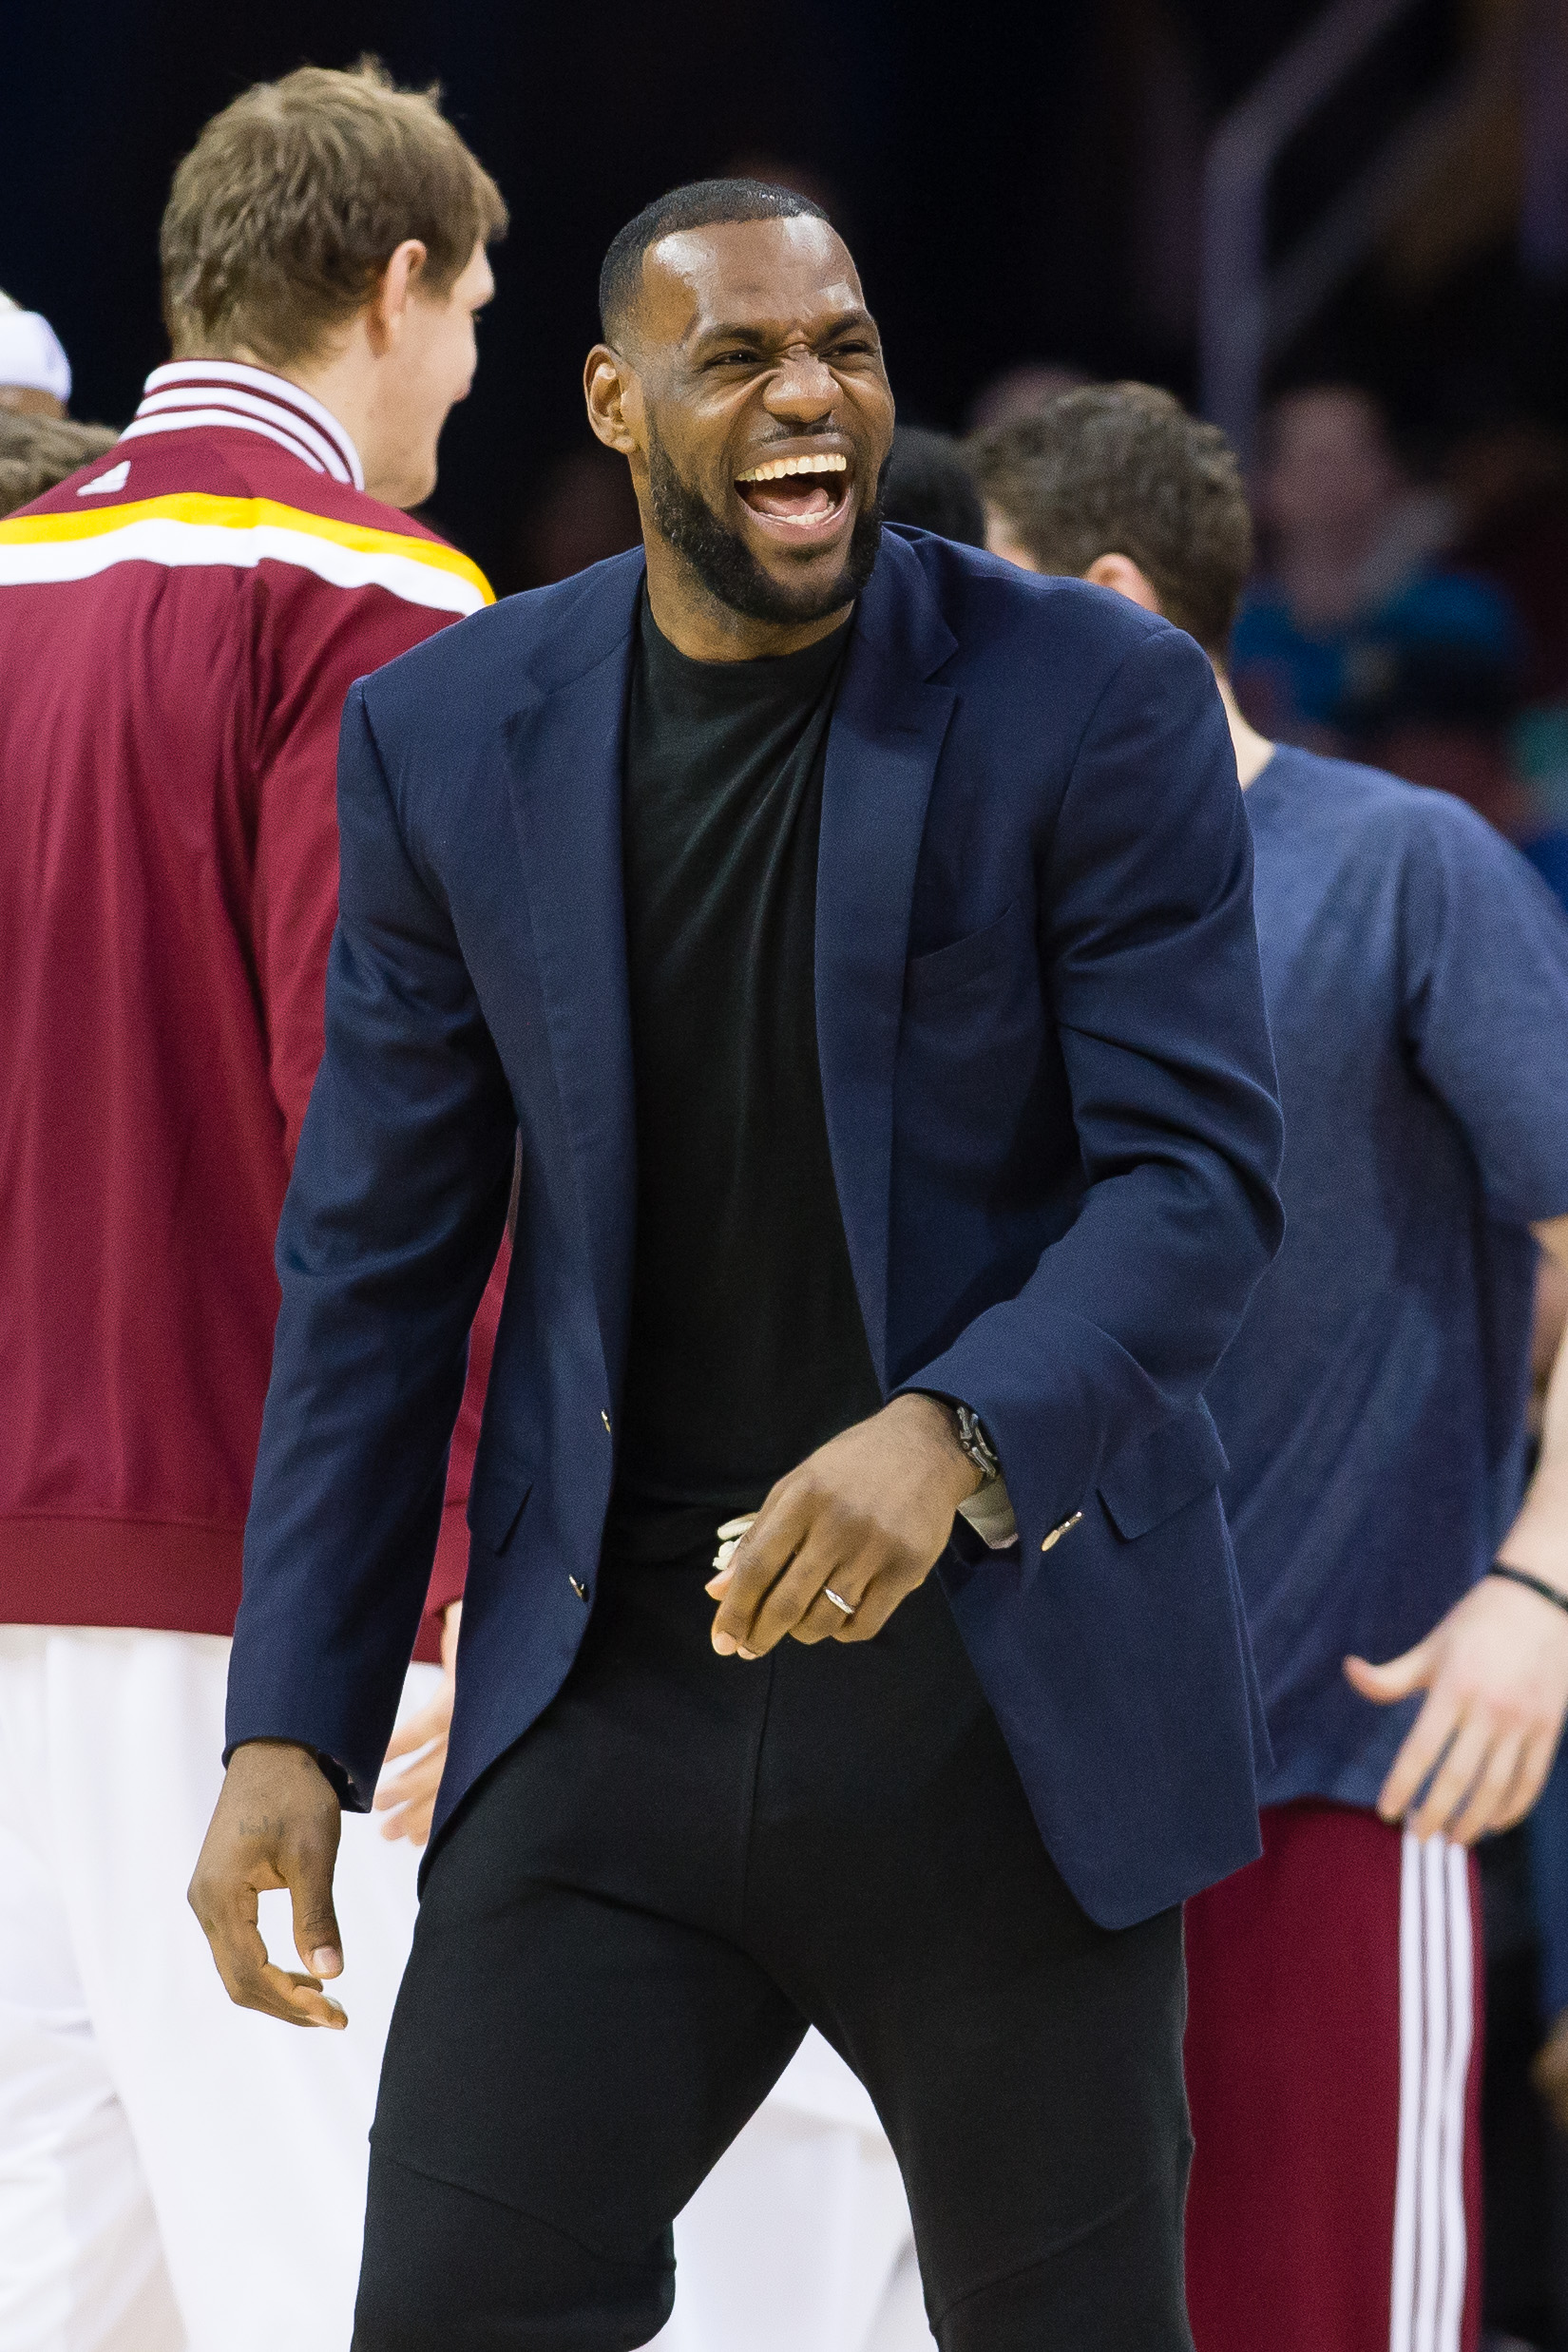 CLEVELAND, OH - APRIL 15: LeBron James #23 of the Cleveland Cavaliers celebrates during overtime against the Washington Wizards at Quicken Loans Arena on April 15, 2014 in Cleveland, Ohio. The Cavaliers defeated the Wizards 113-108 in overtime. (Photo by